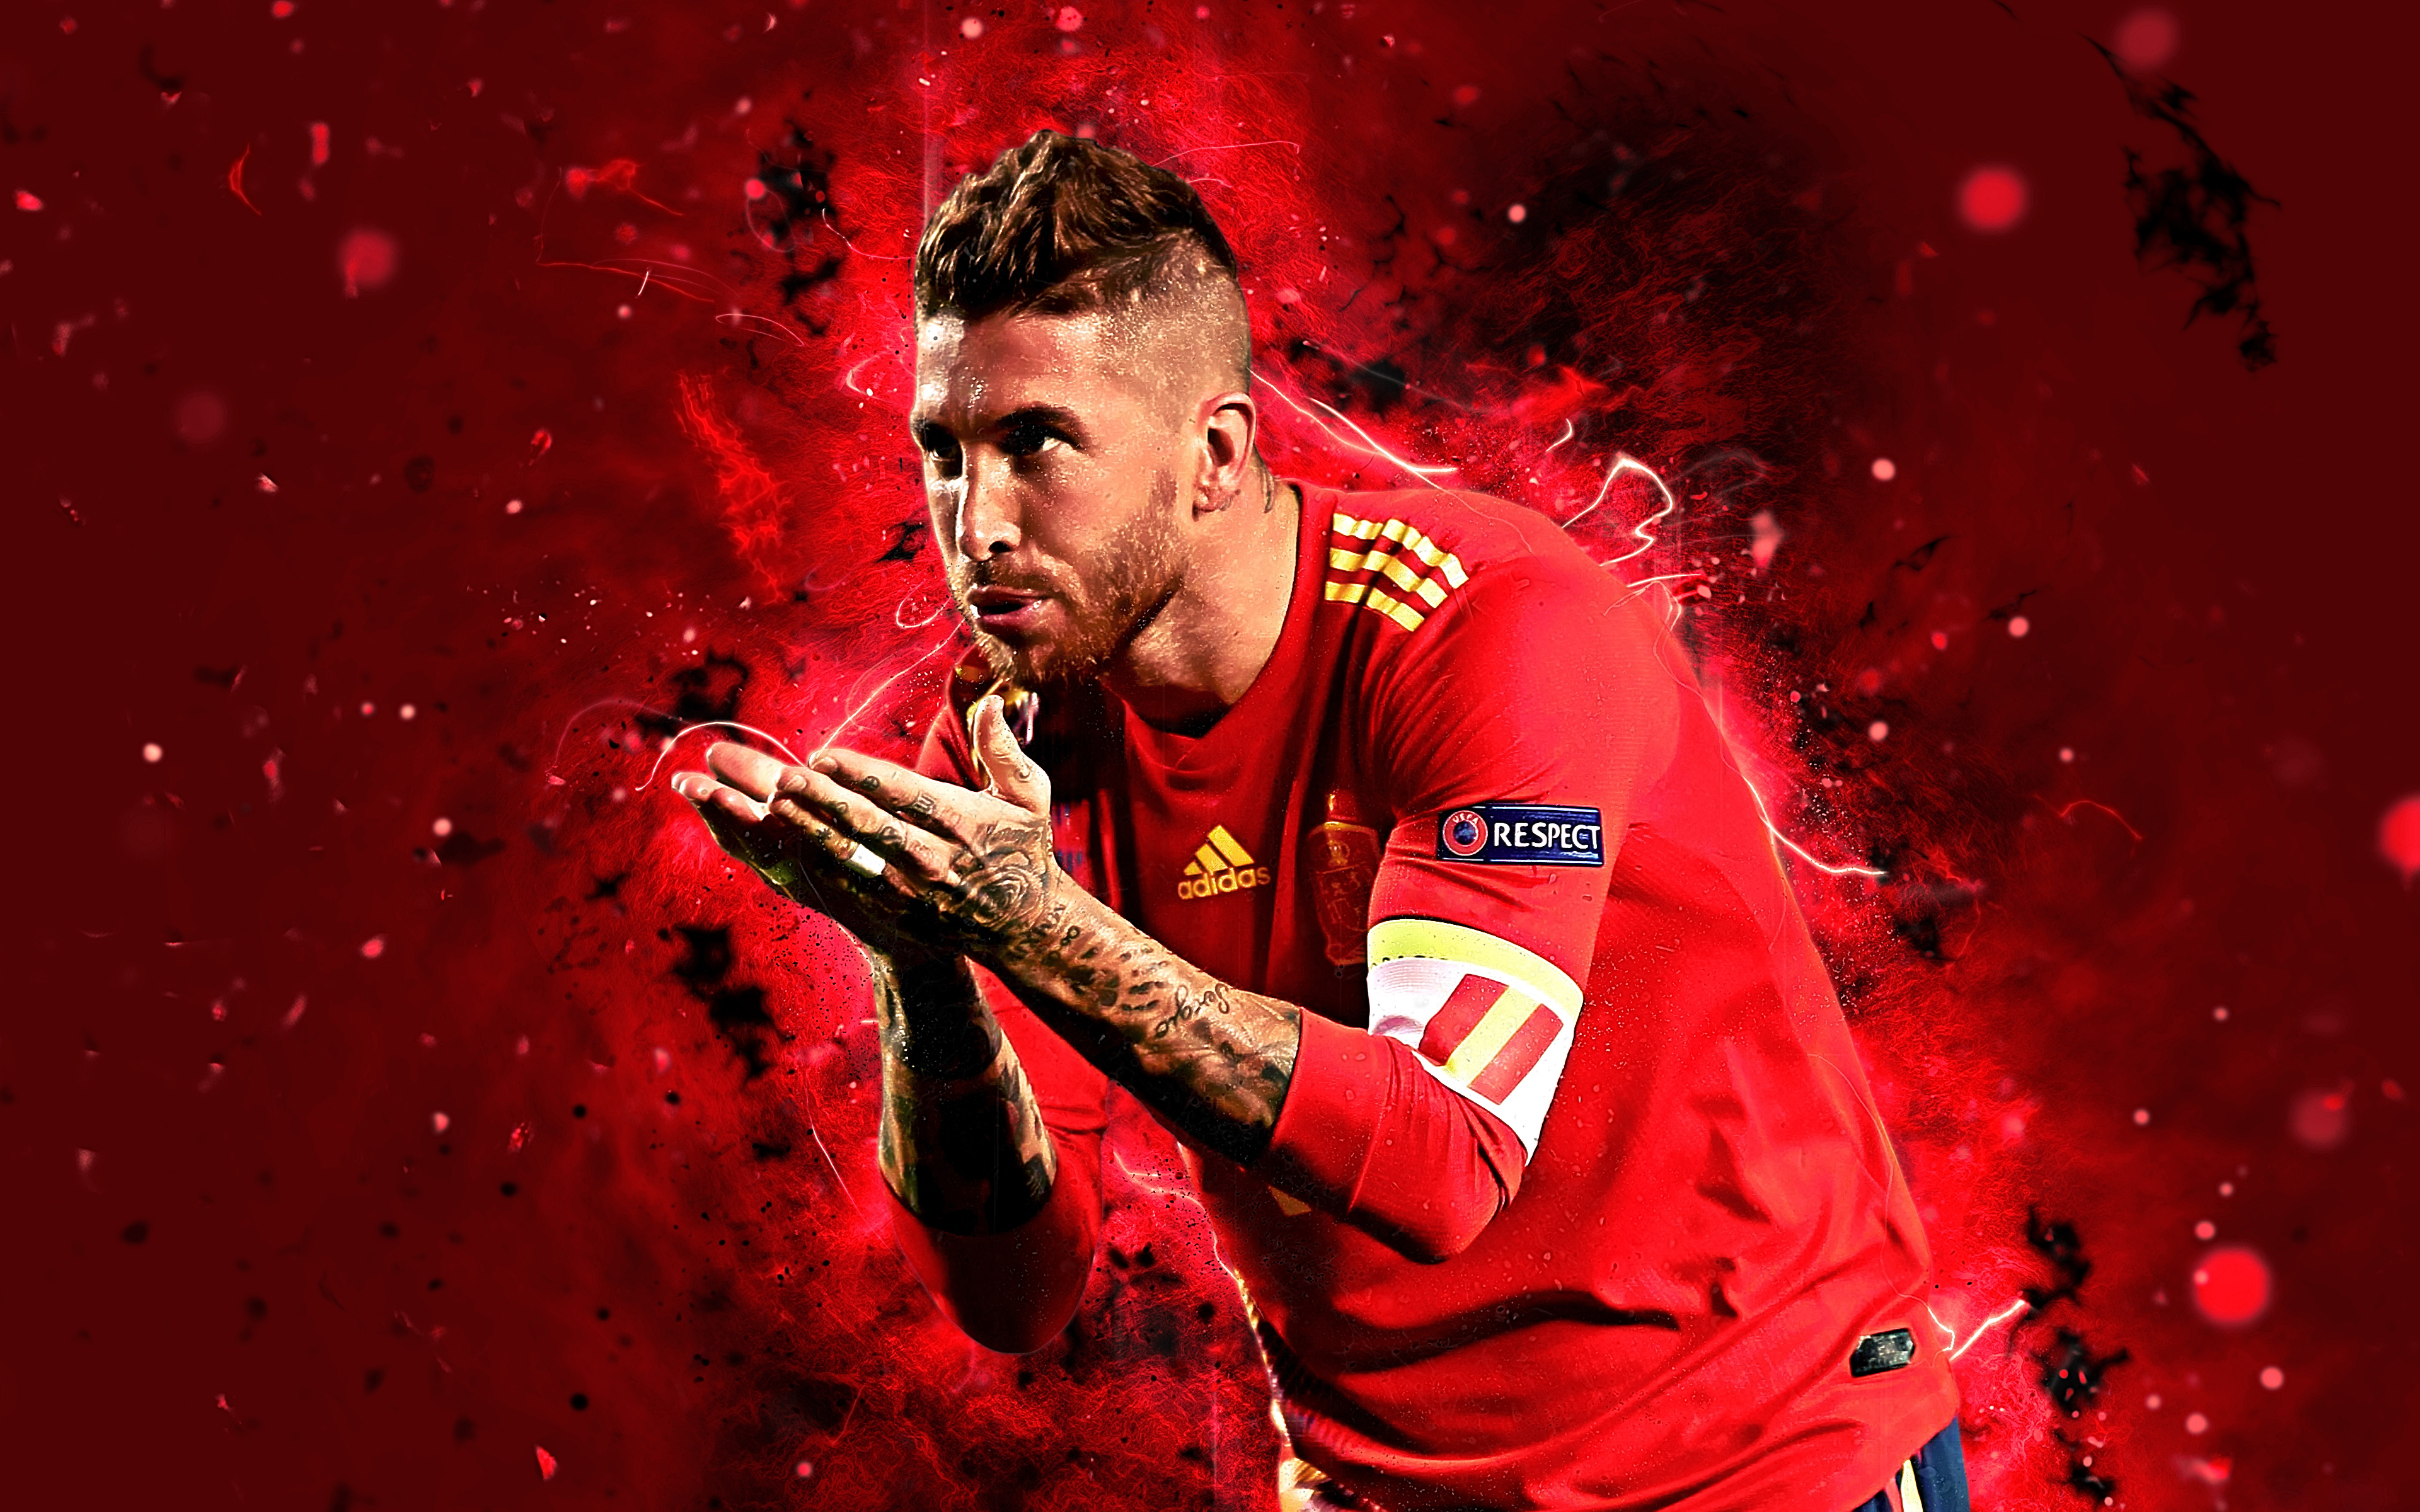 Sergio Ramos   Spain 4k Ultra HD Wallpaper Background Image 3840x2400